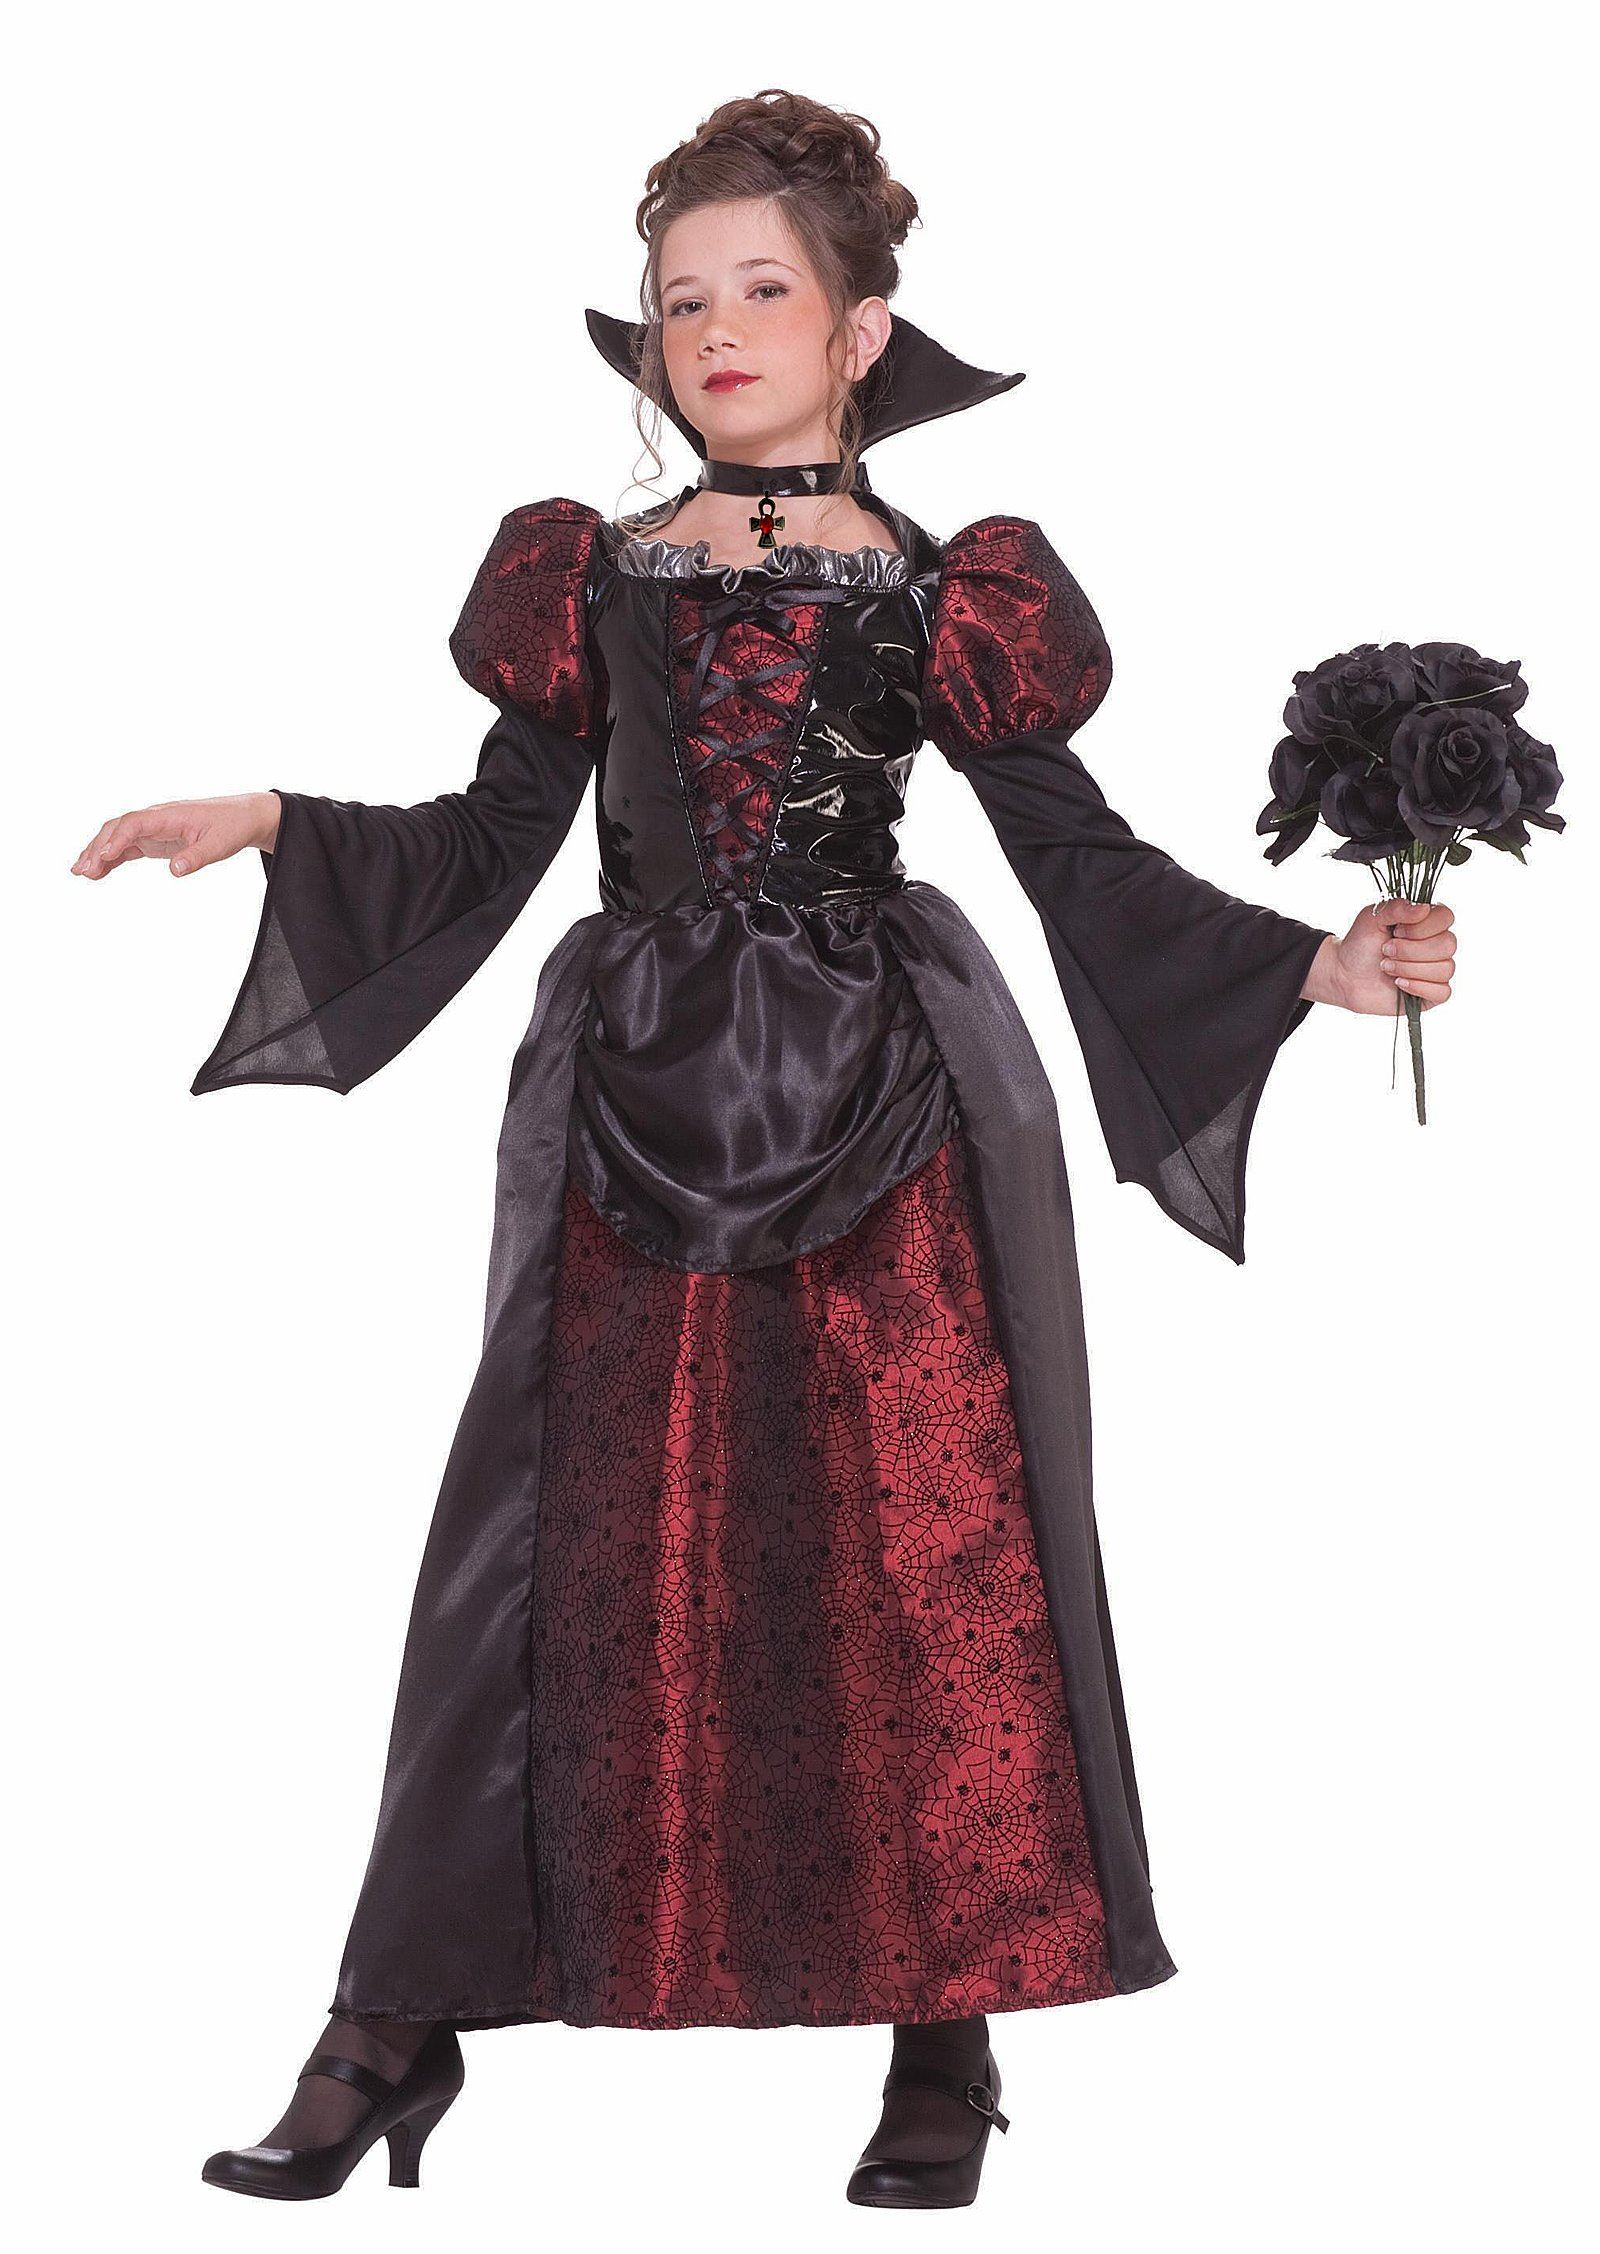 ... Designer Deluxe Girl Halloween Costume  $21.99  The Costume Land